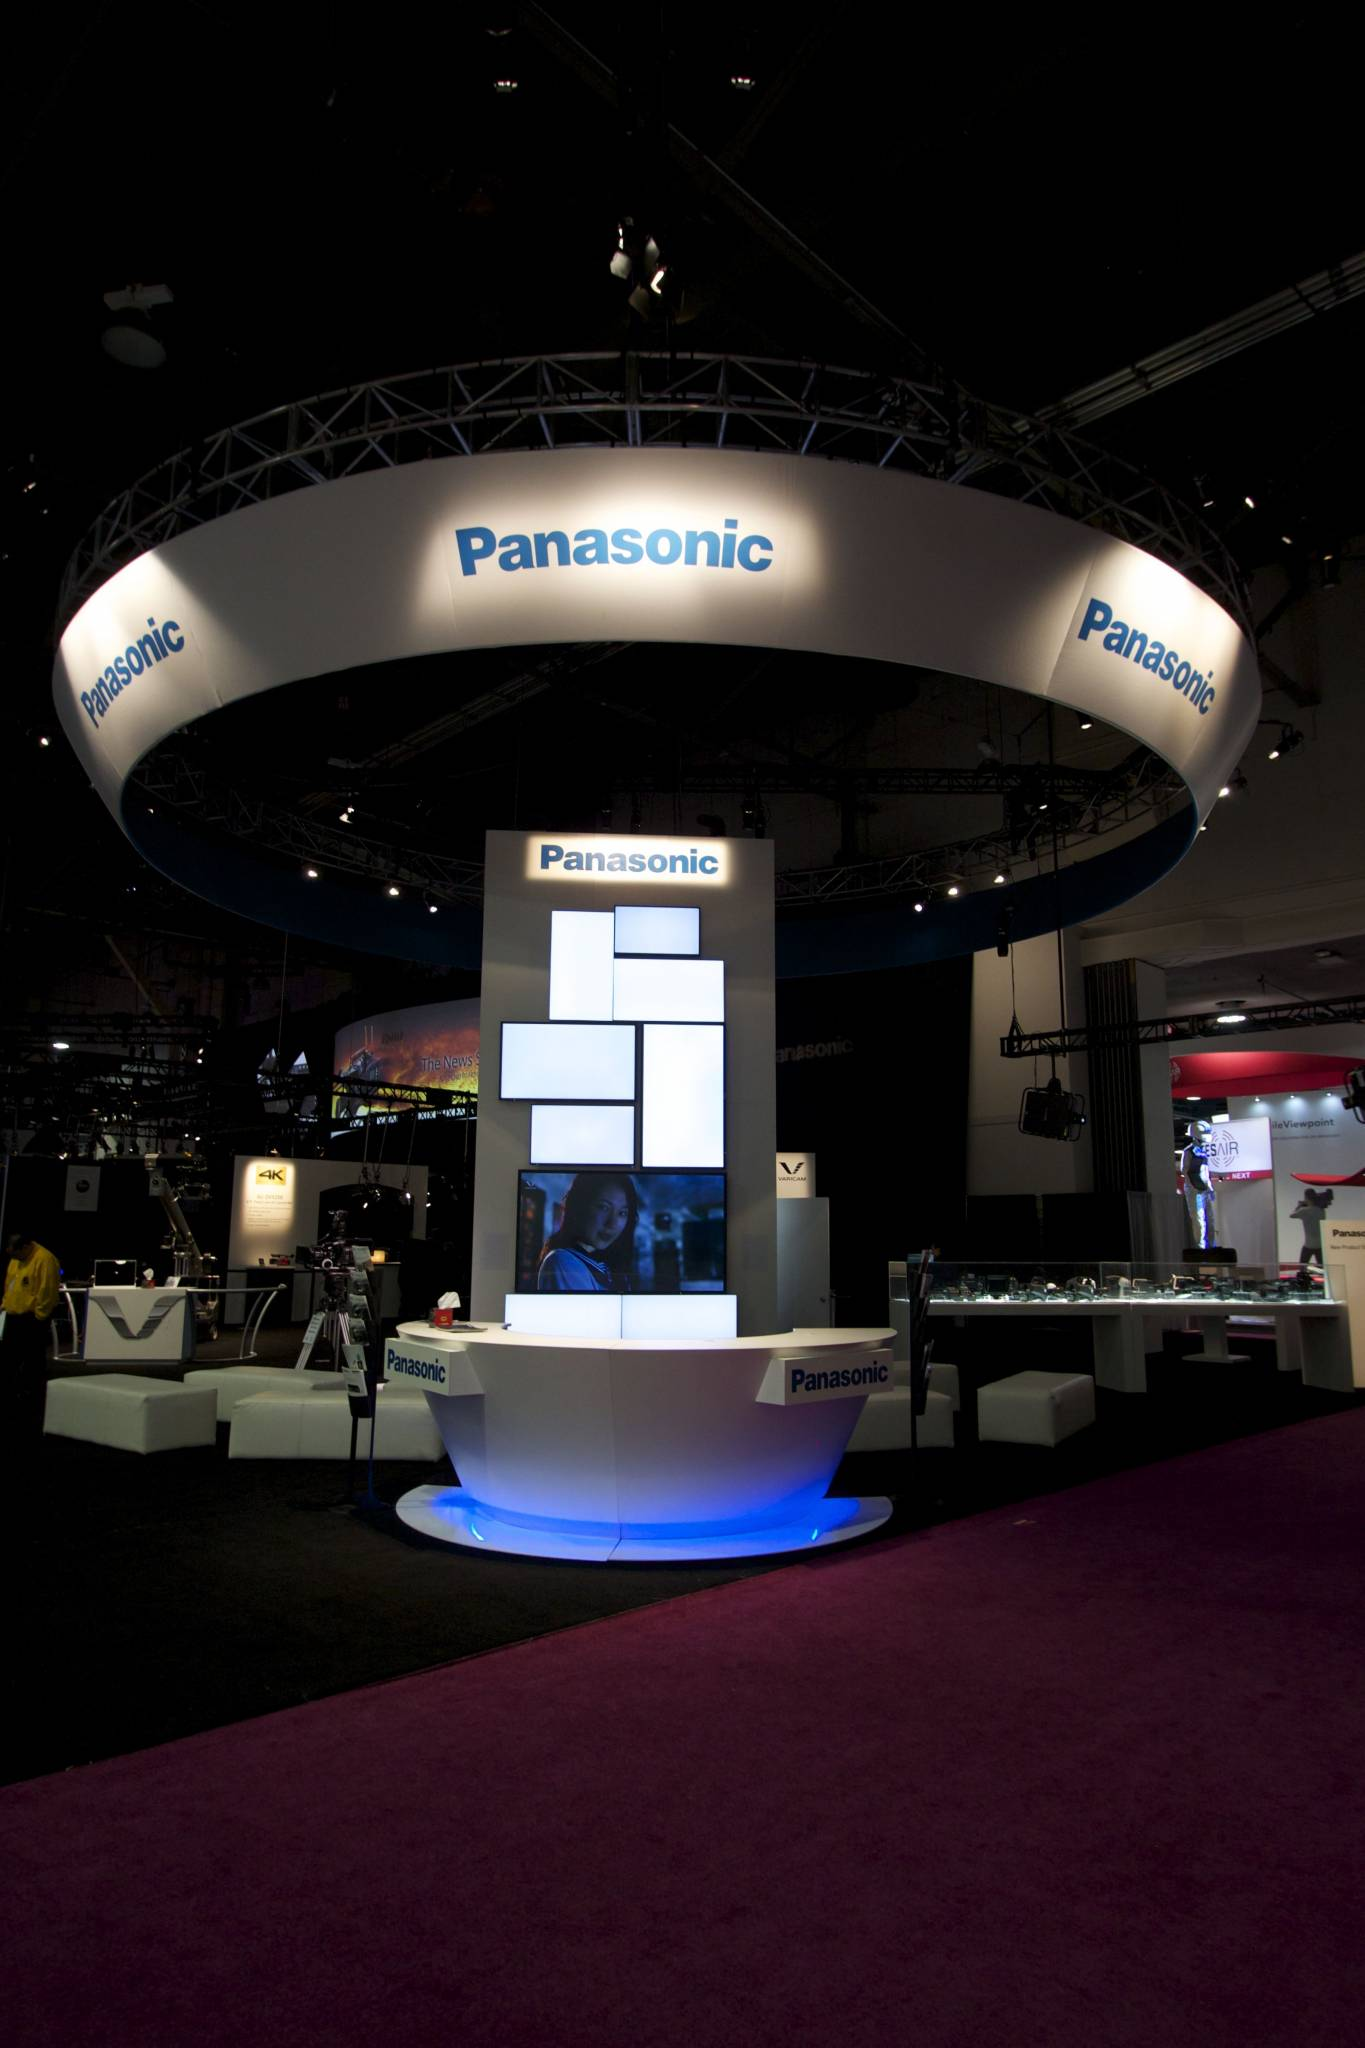 ... showcased the intricate theatrical lighting needed to demonstrate the versatile camera technology as offered by Panasonic such as the Varicam platform. & 2015 - NAB - Panasonic Exhibit Lighting - Fine Design Associates azcodes.com